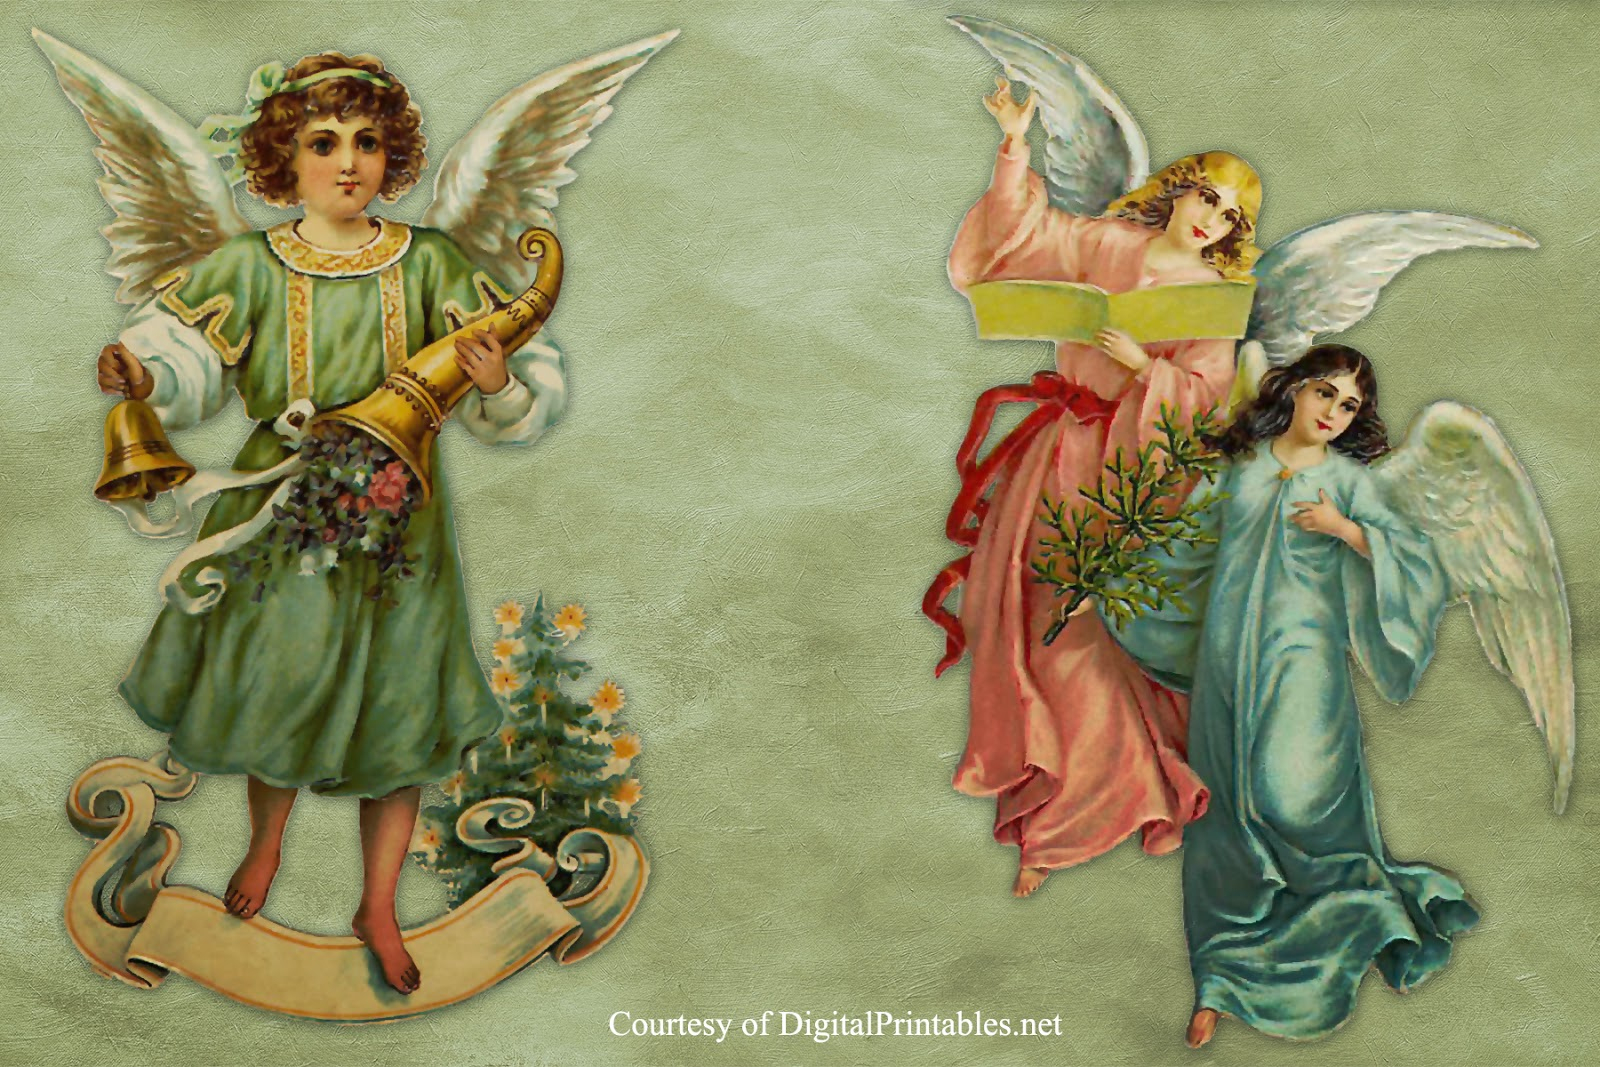 Digital Printables: Free Printable Victorian Christmas Angel Scraps - Free Printable Decoupage Images